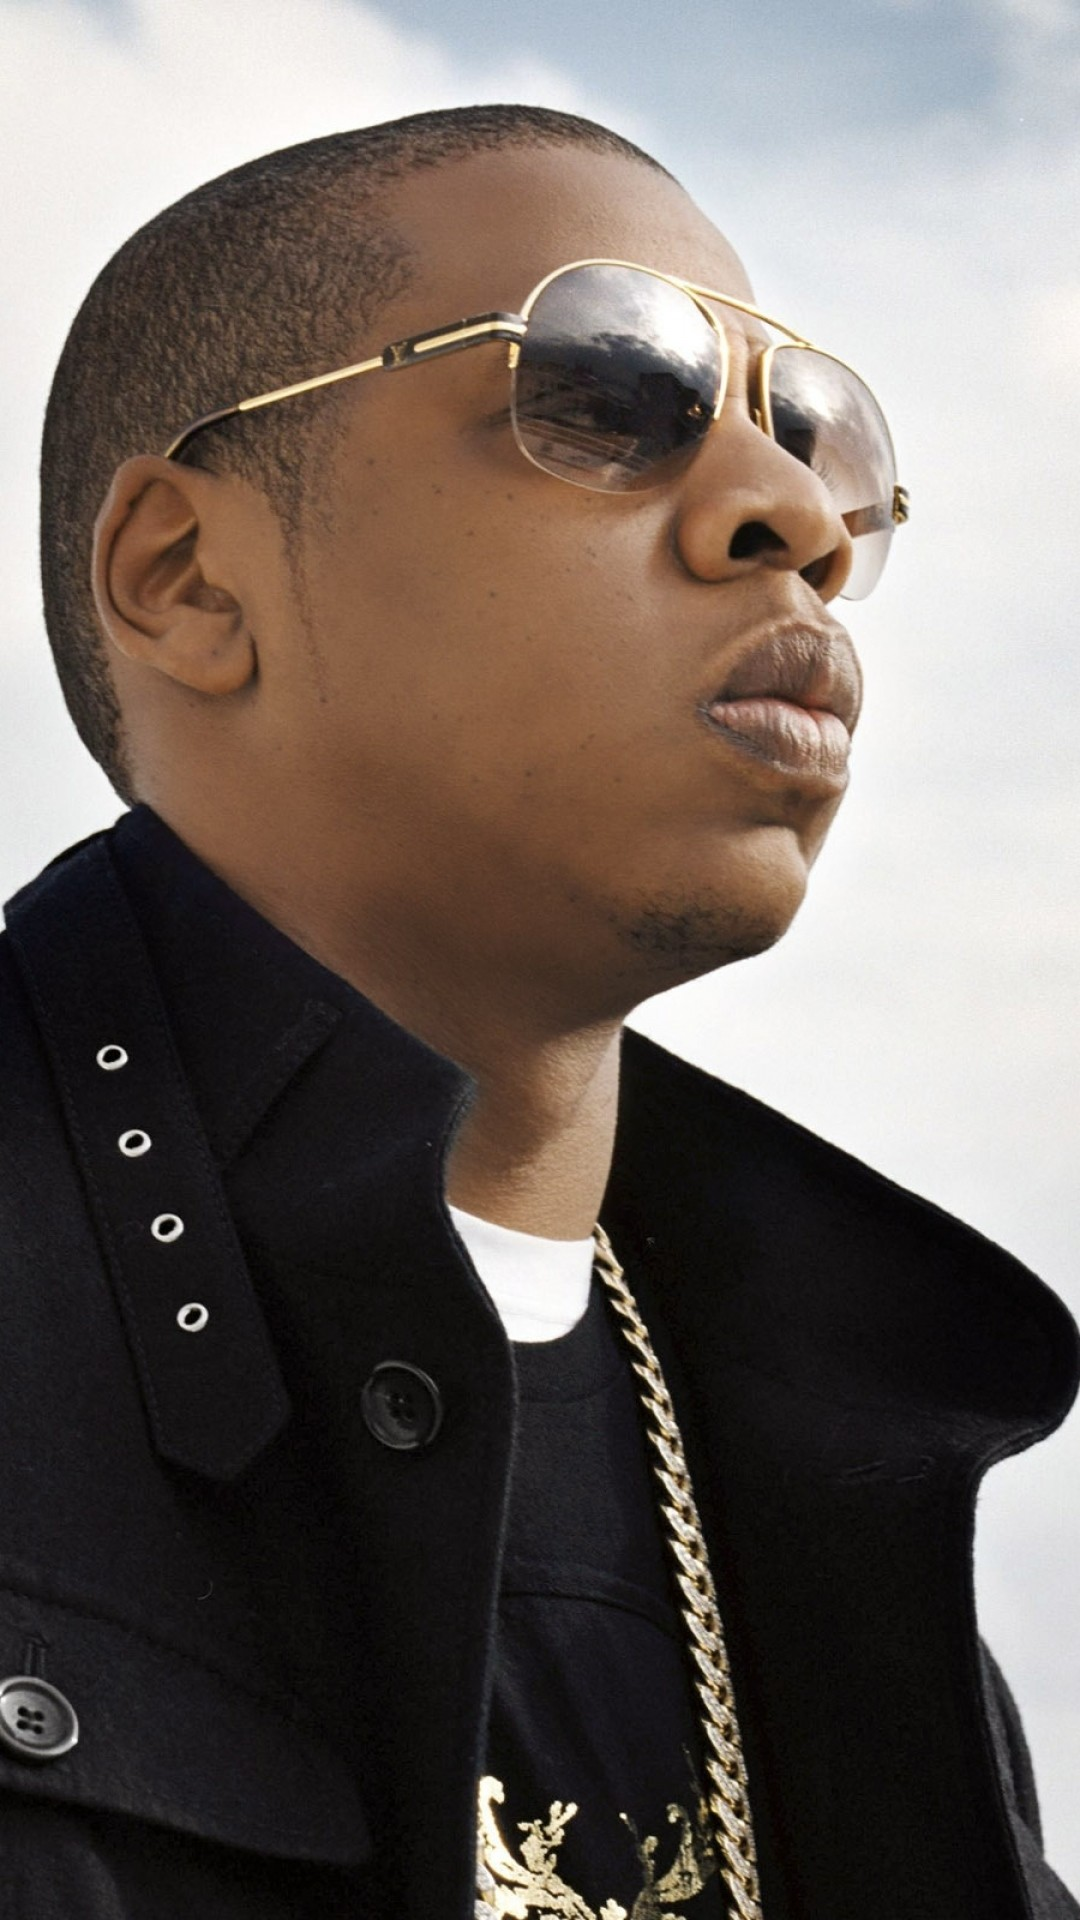 Wallpaper jay-z, sunglasses, sky, view, singer, celebrity